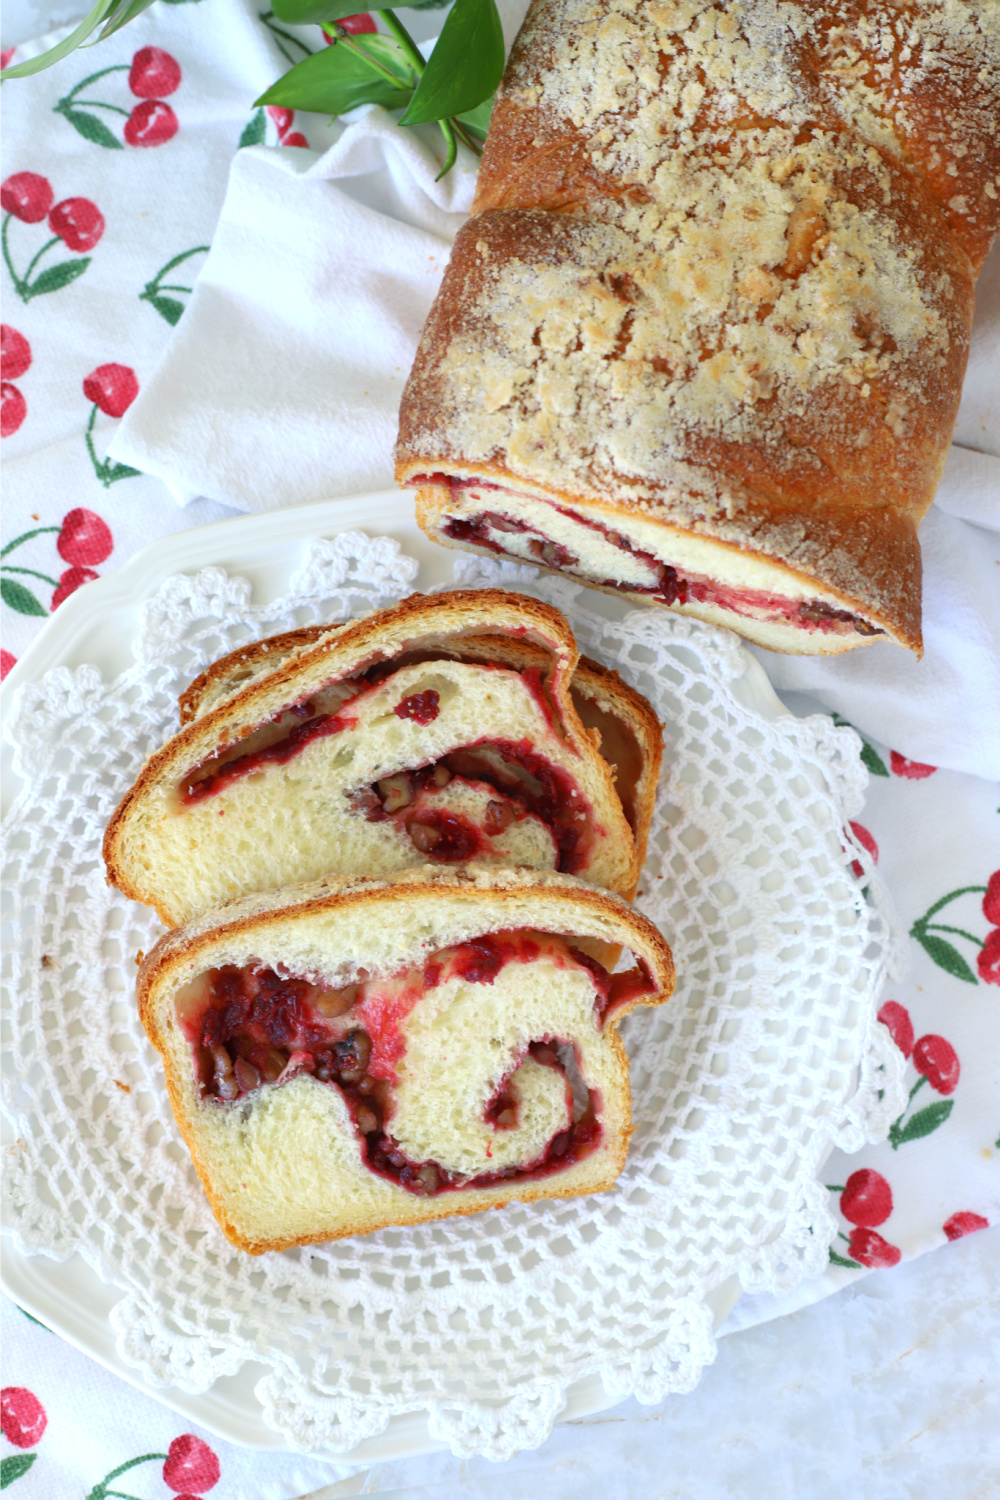 Easy recipe for a loaf of cranberry swirl bread with a pretty filling using fresh or frozen cranberries and walnuts or pecans. Yeast dough made with a bread machine or by hand.